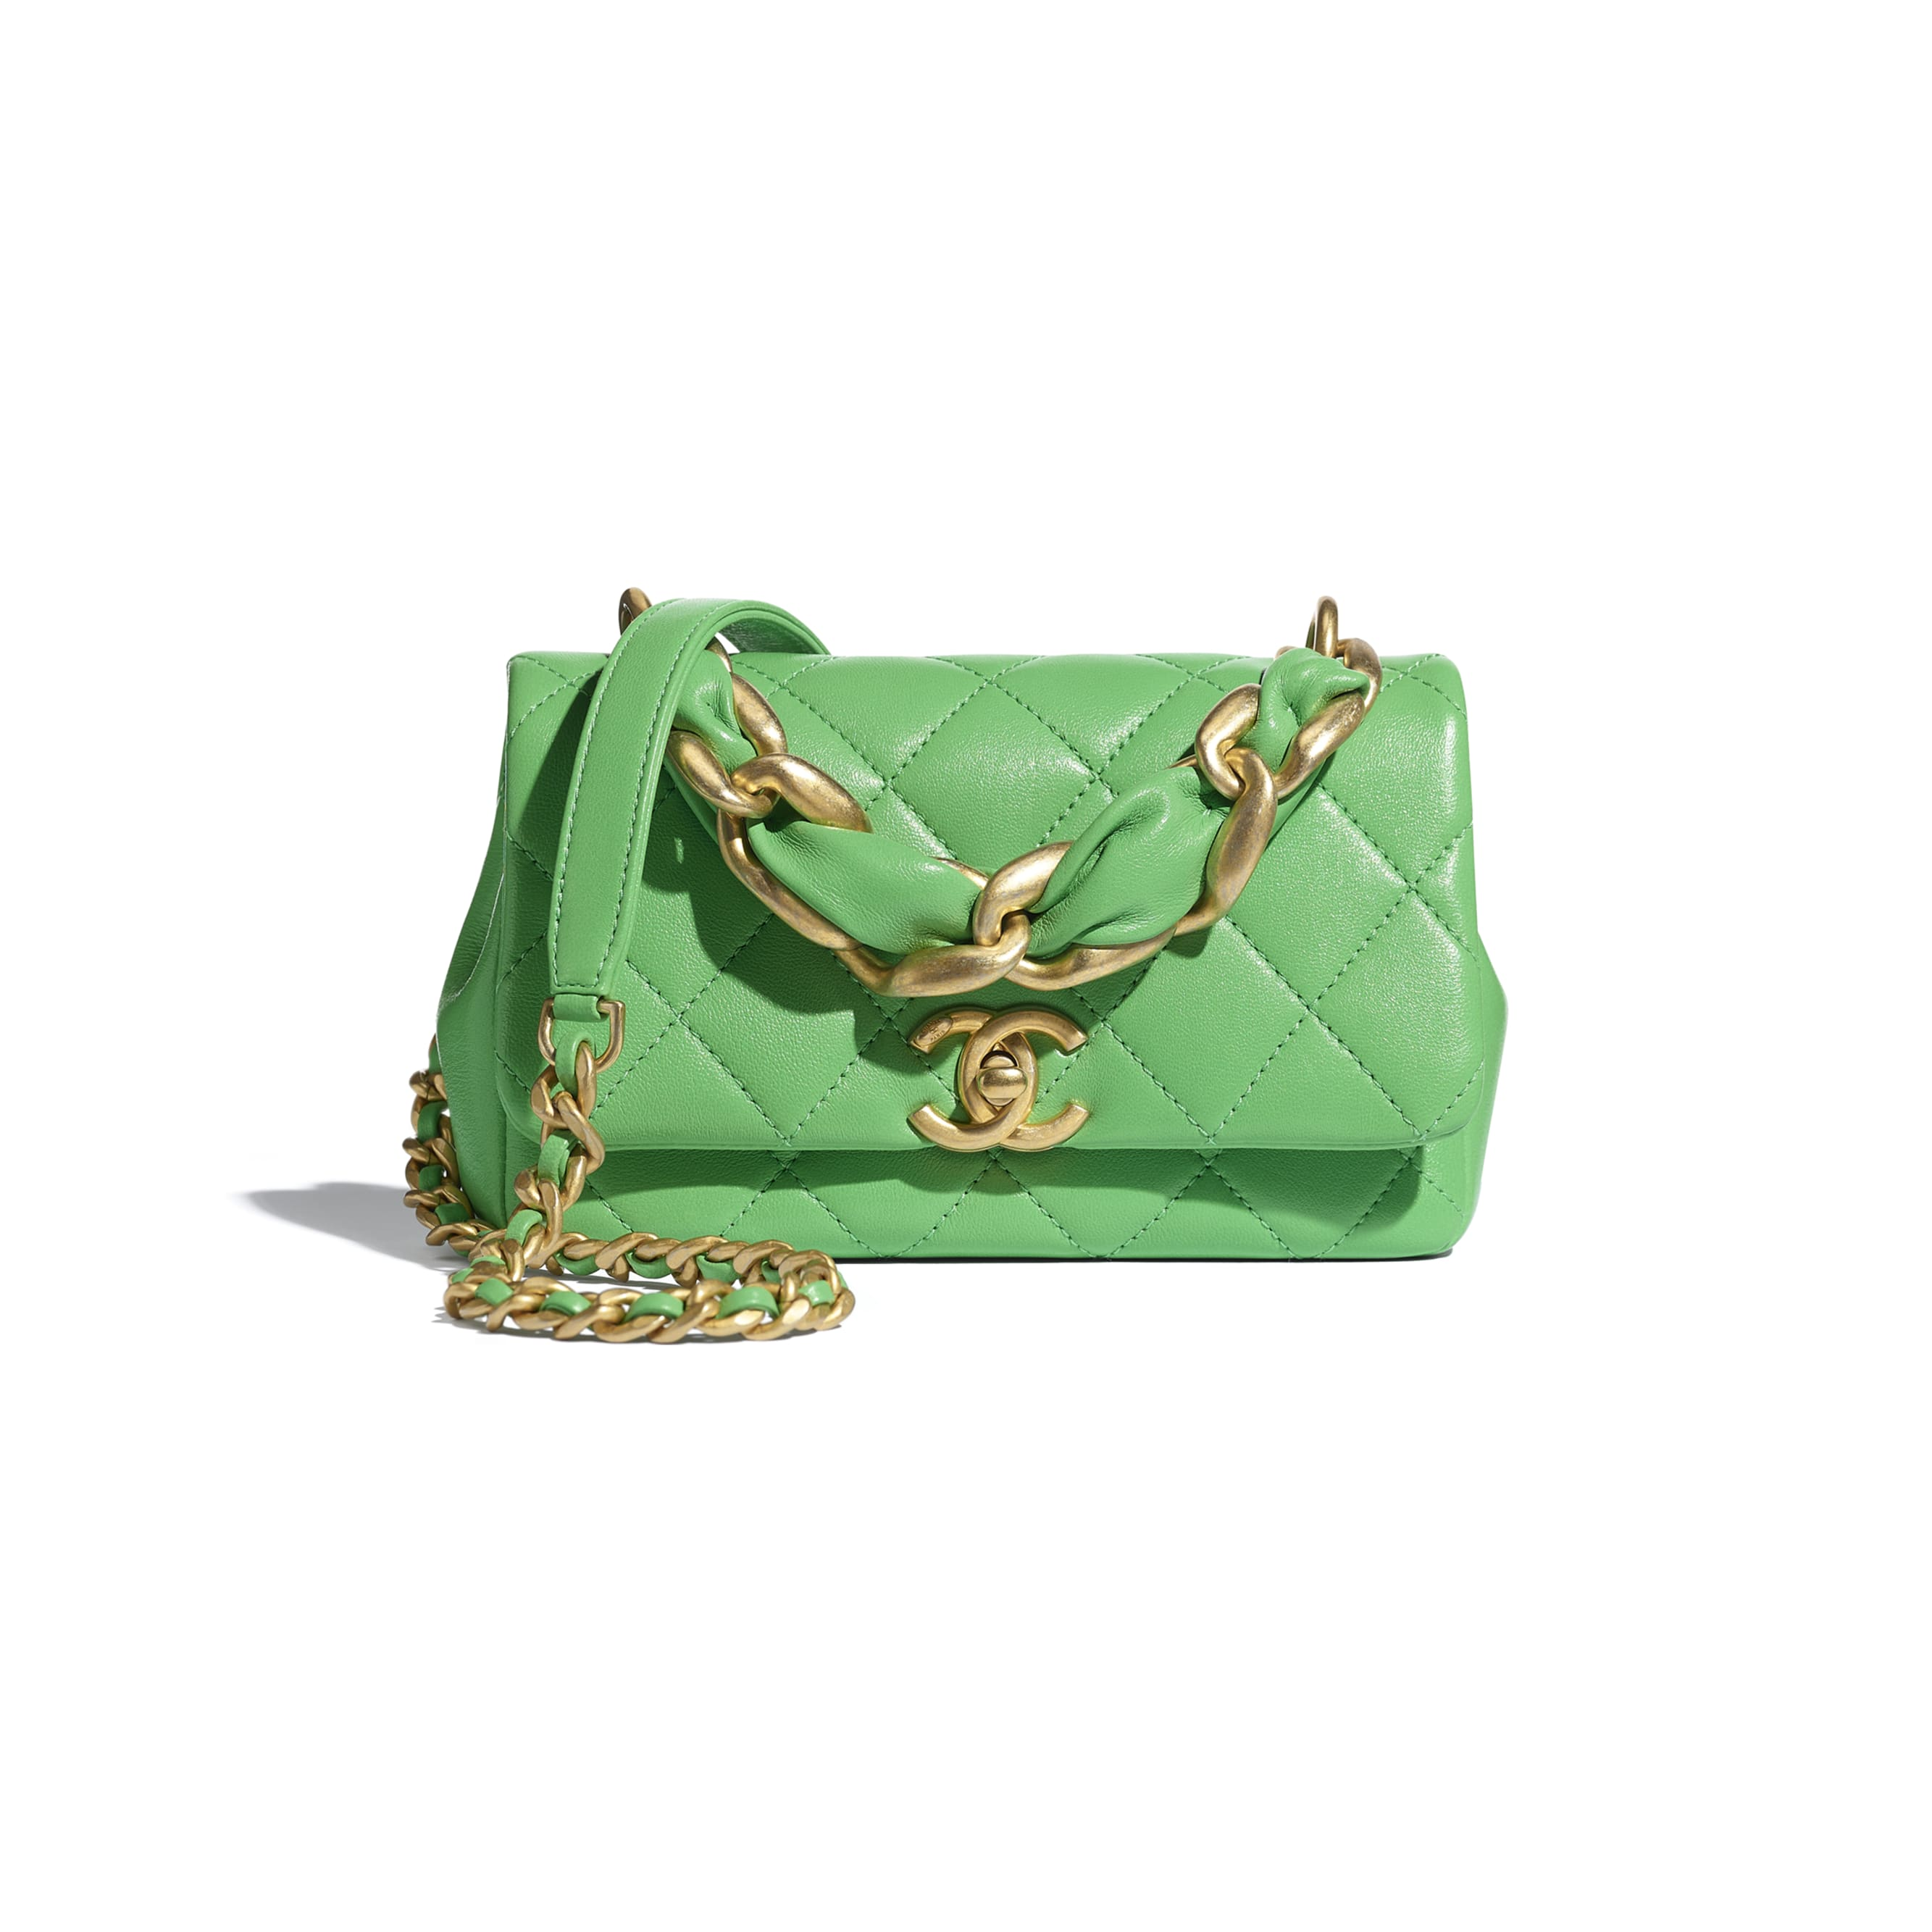 Small Flap Bag - Green - Shiny Lambskin & Gold-Tone Metal - CHANEL - Default view - see standard sized version